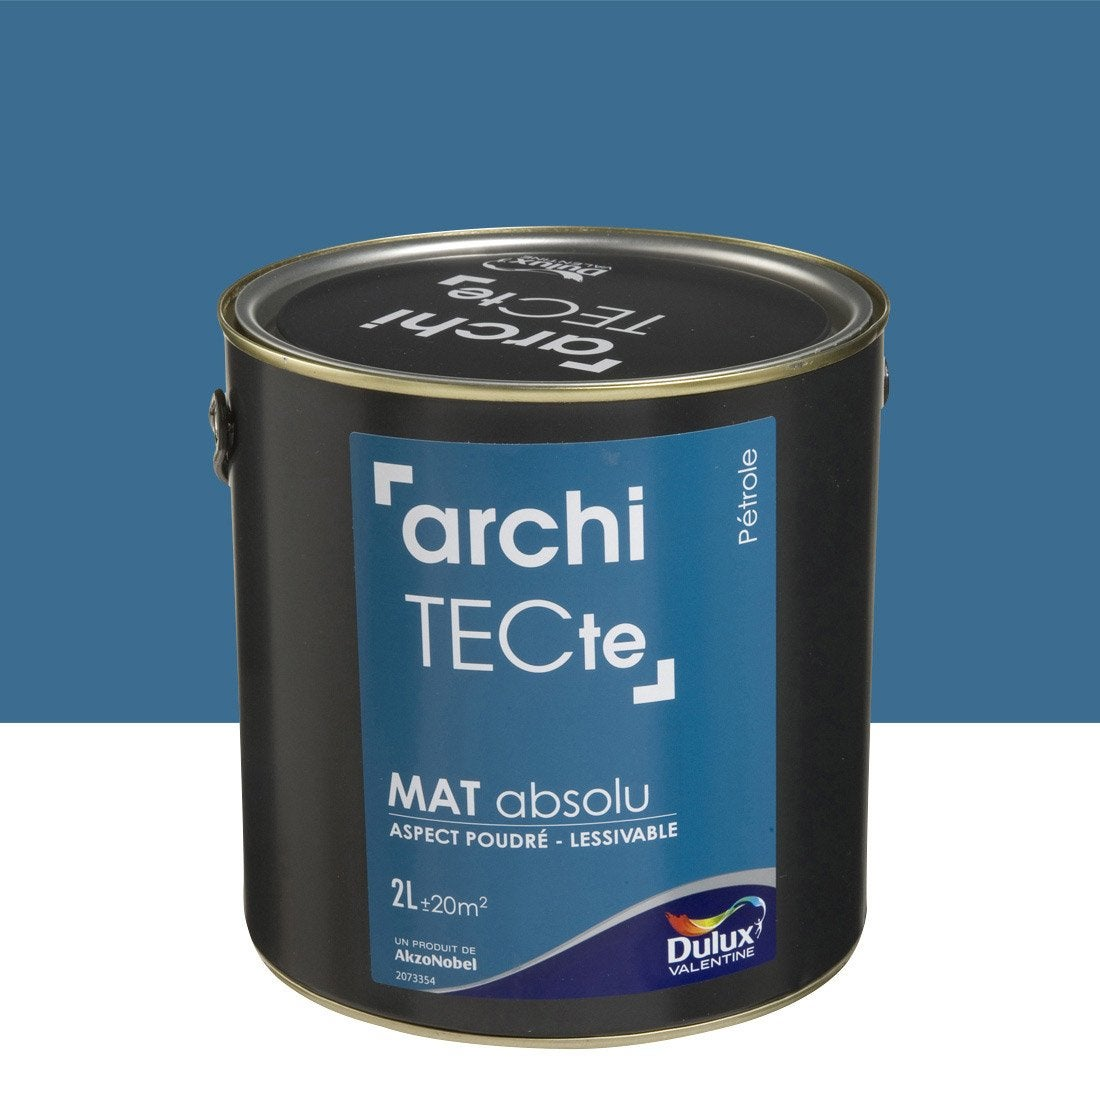 peinture bleu p trole mat dulux valentine architecte 2 l leroy merlin. Black Bedroom Furniture Sets. Home Design Ideas